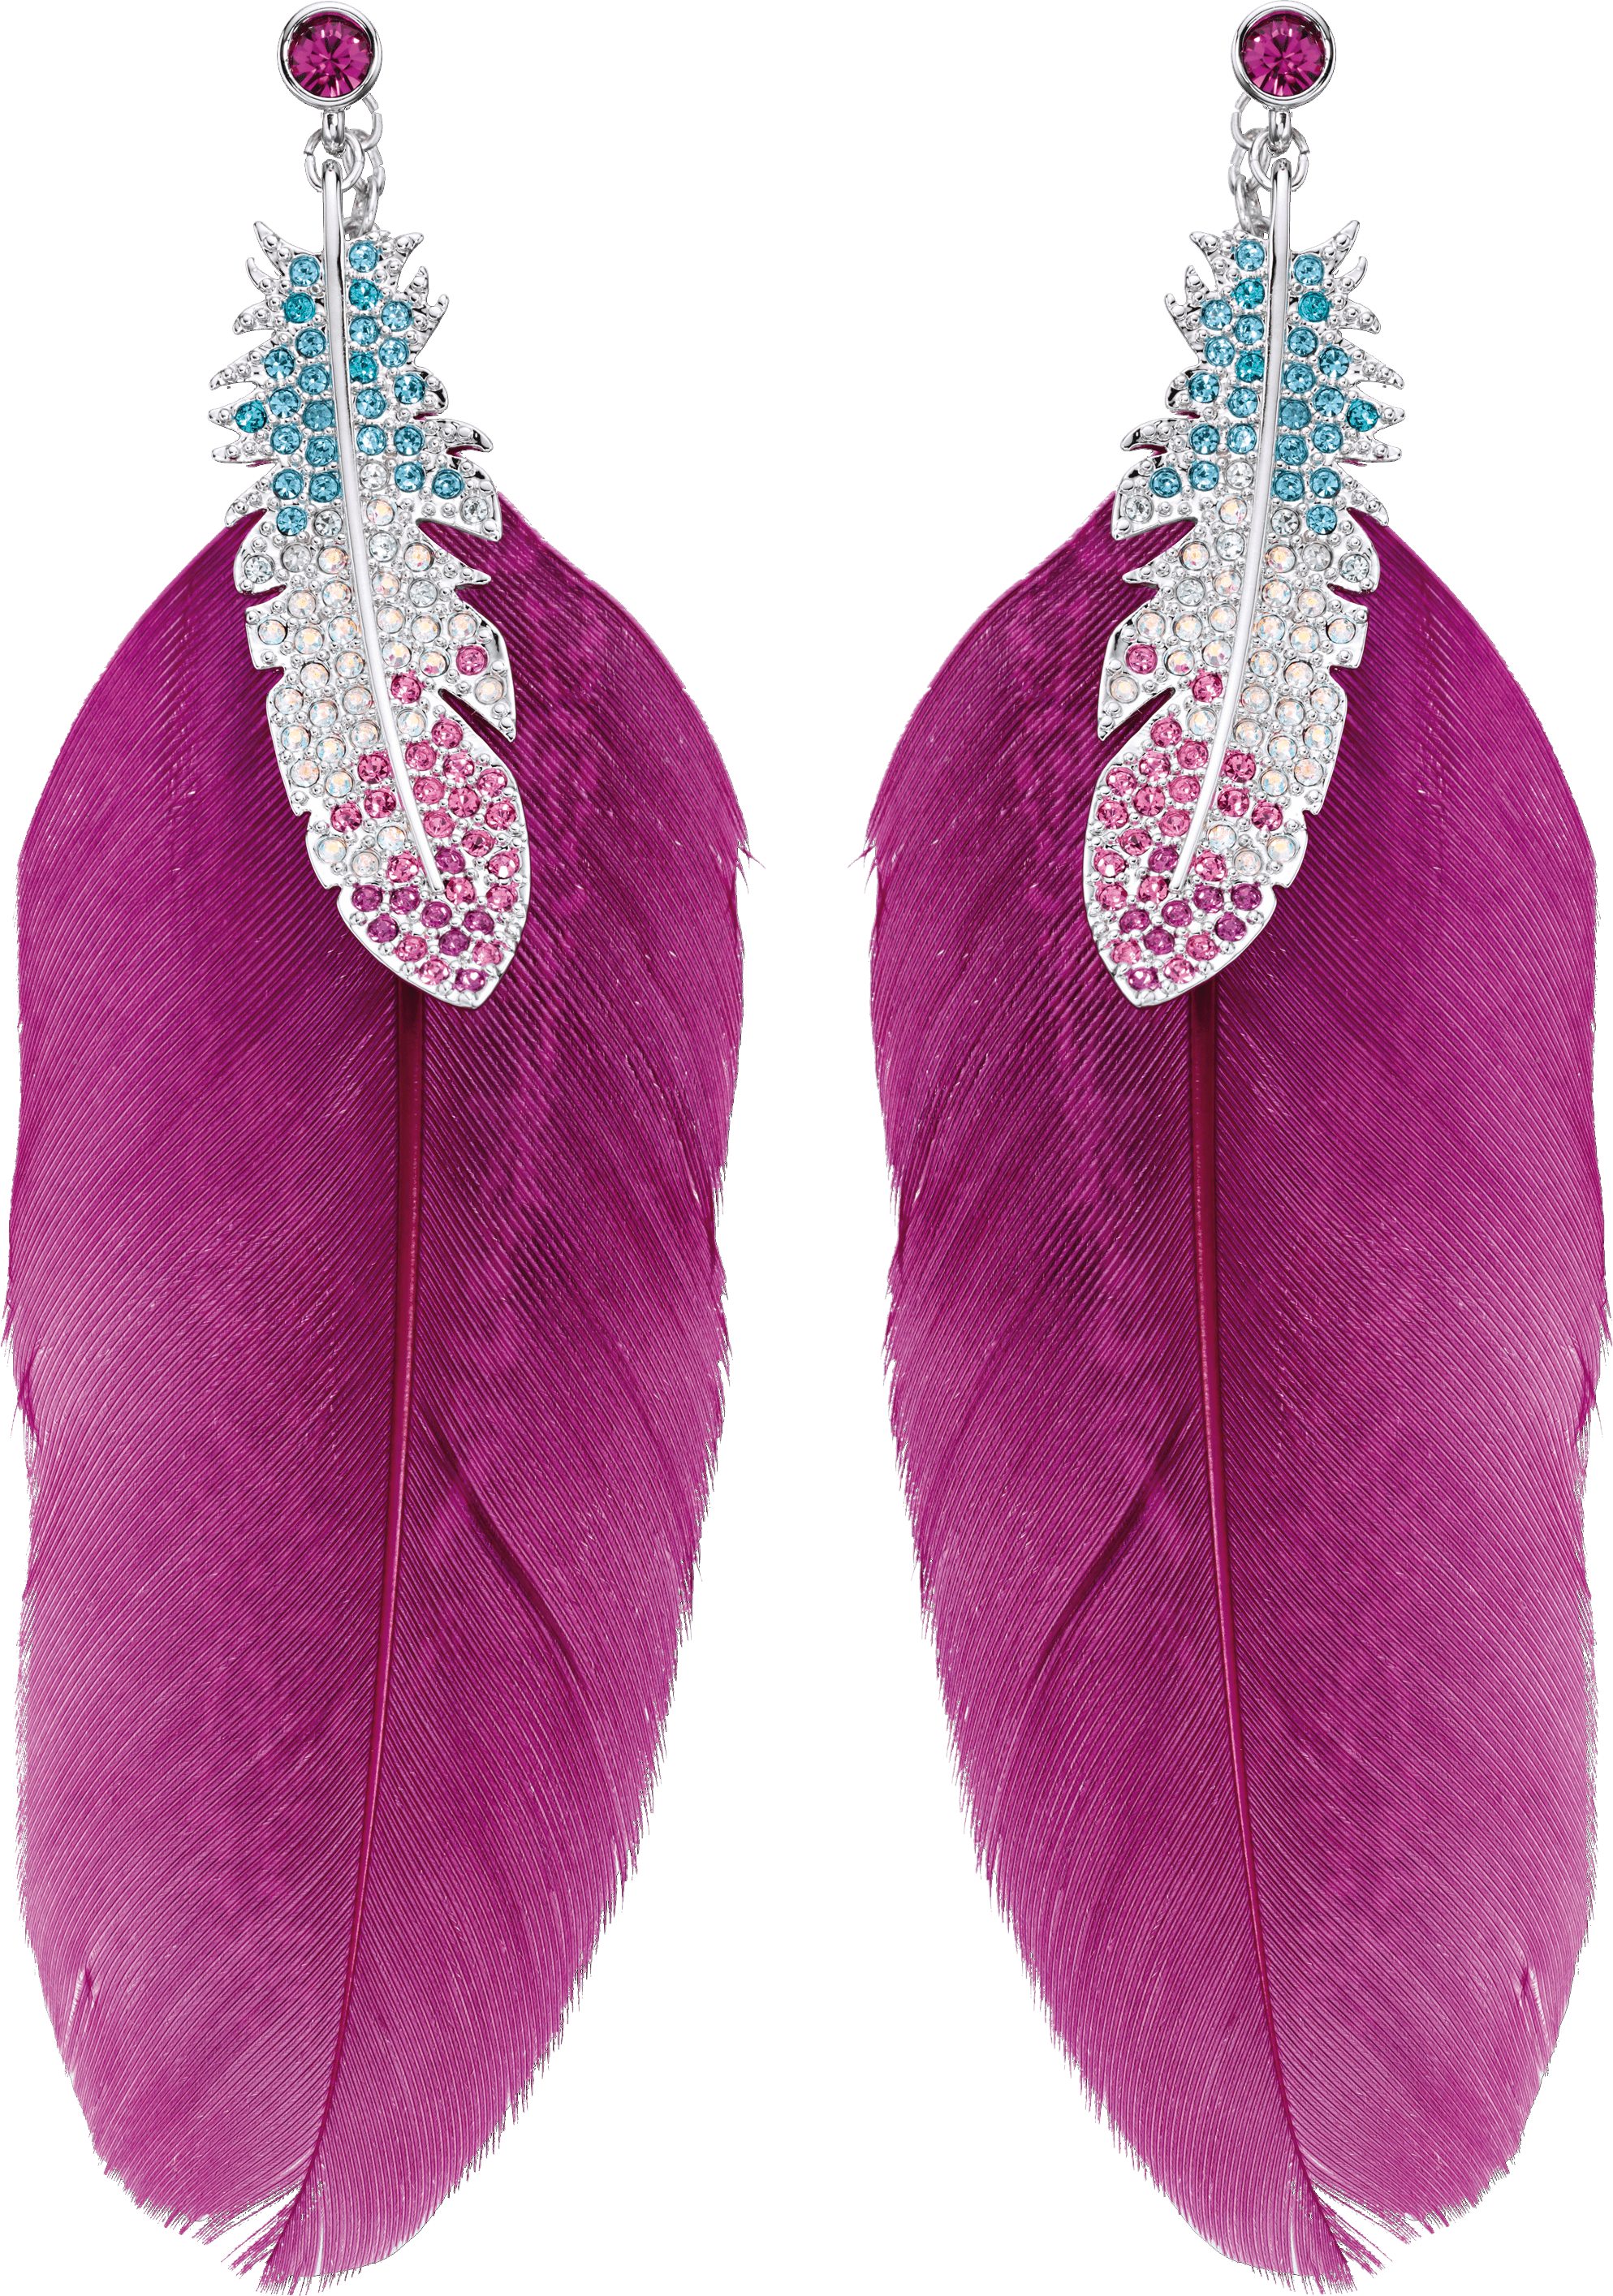 Feather Earrings Png Image PNG Image